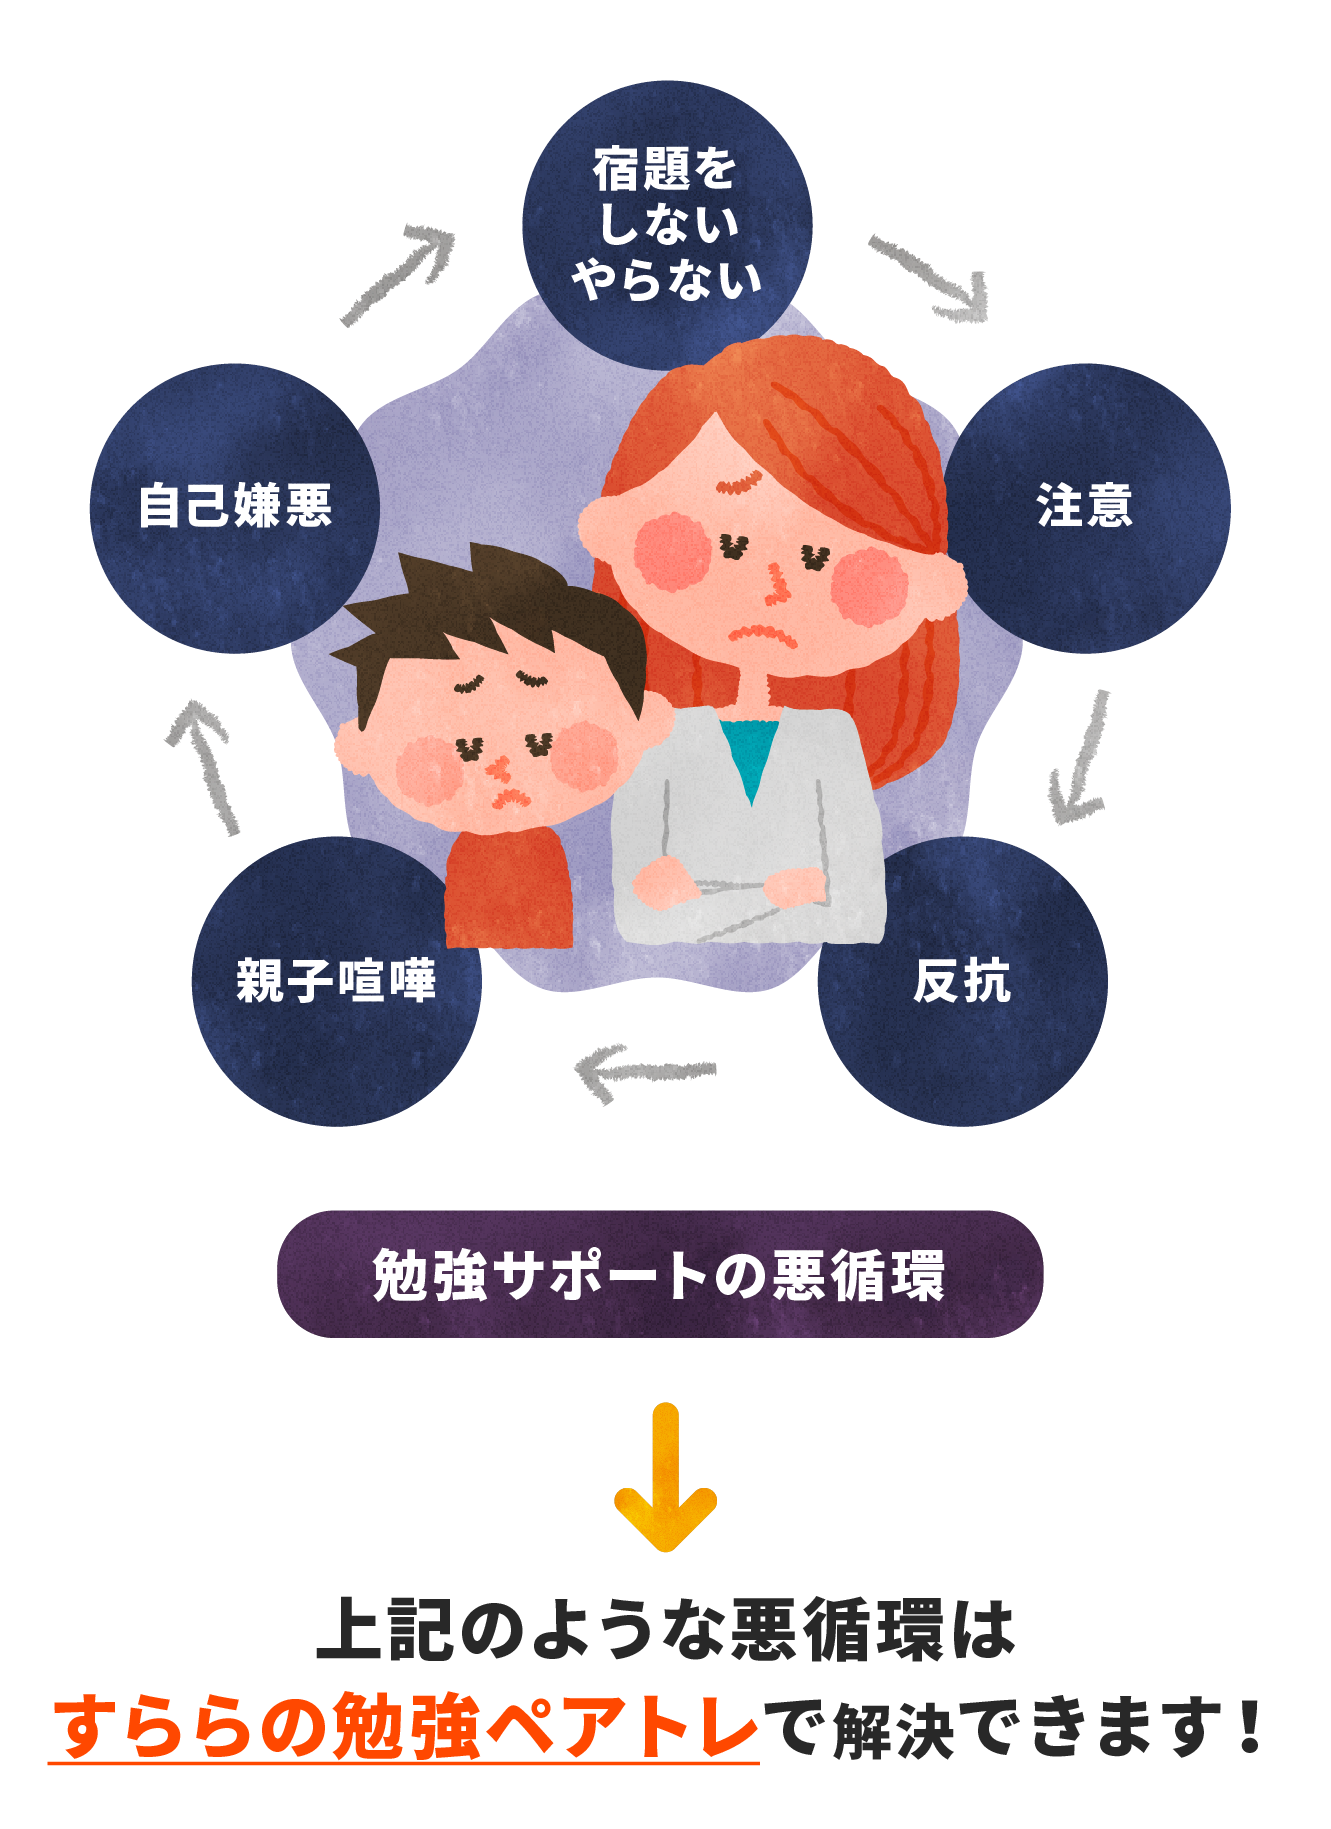 https://surala.jp/parental-services/bx-mgmt/lp/img/sec04_img02.png